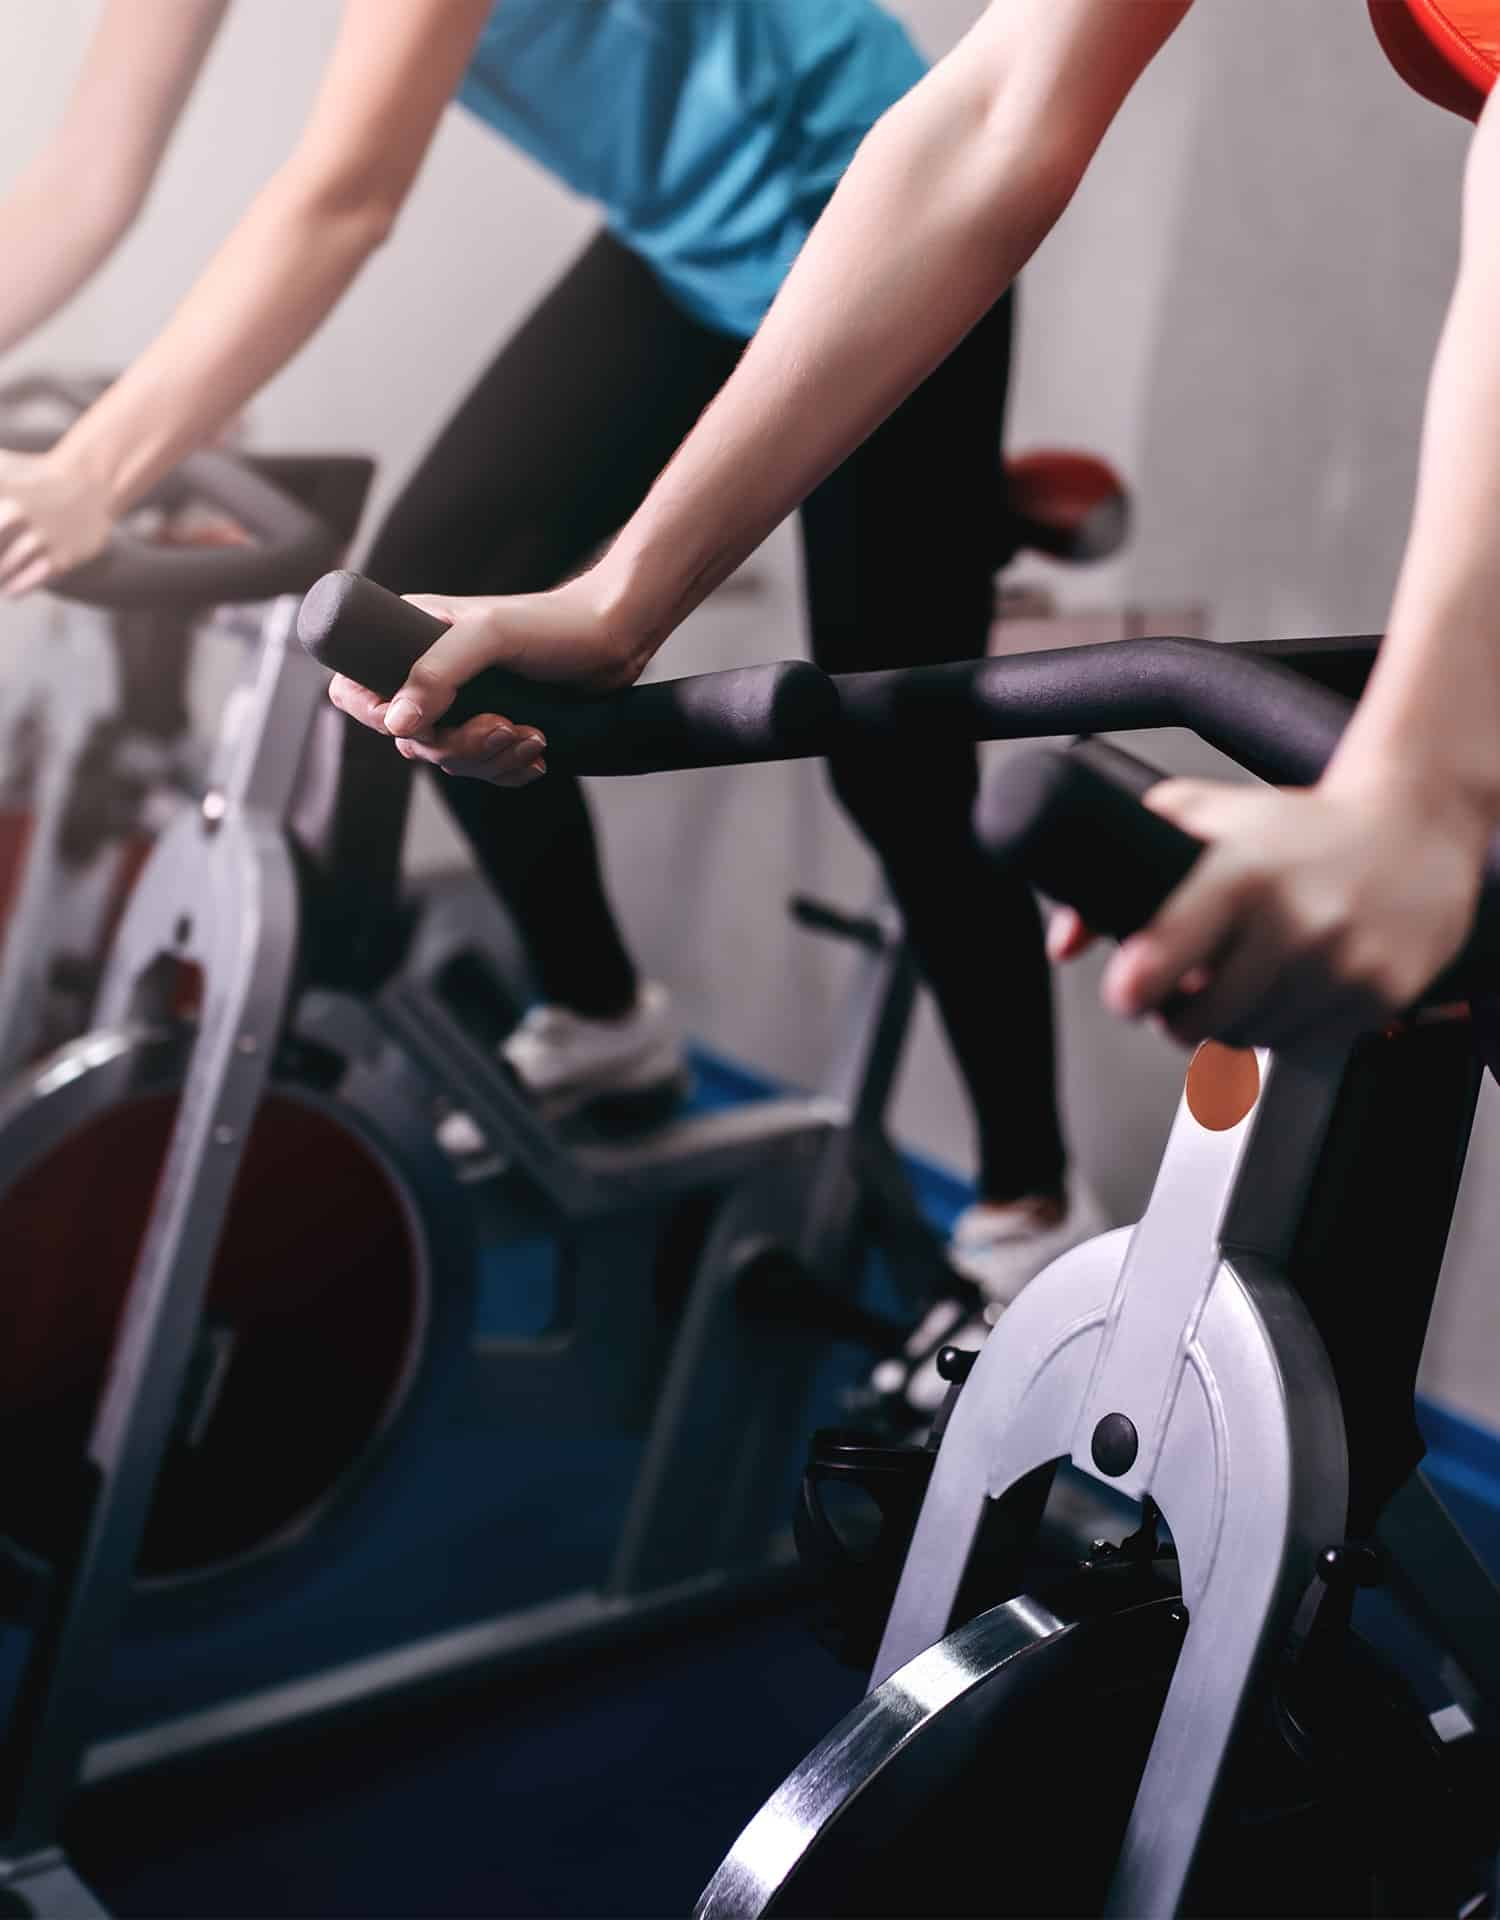 Pur K | Working Way Too Hard: Top 3 Healthy Lifestyle Changes 1